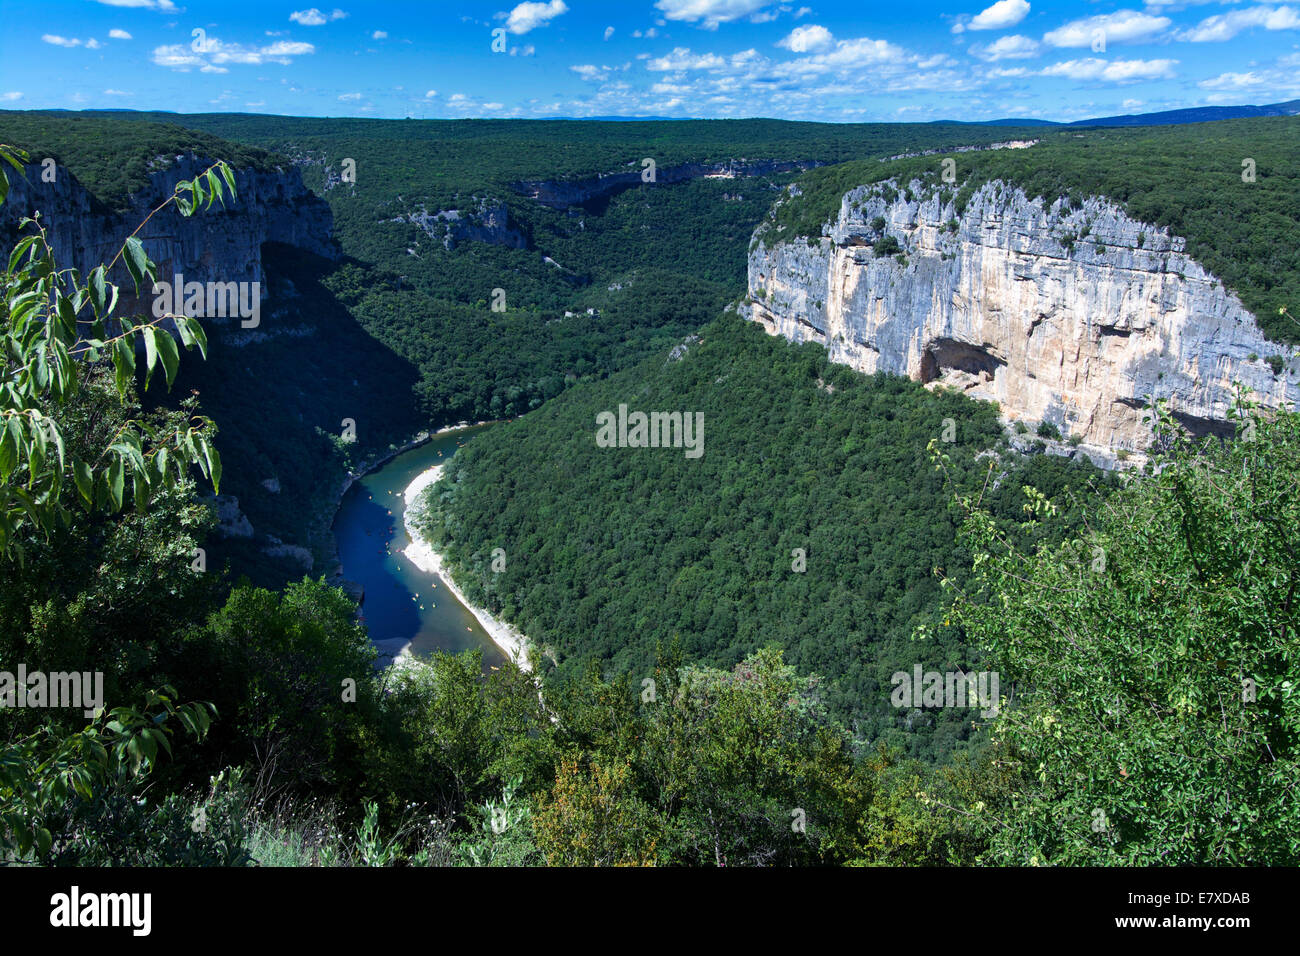 Panorama of the Gorges de l'Ardeche, Ardeche, Rhone-Alpes, France, Europe - Stock Image